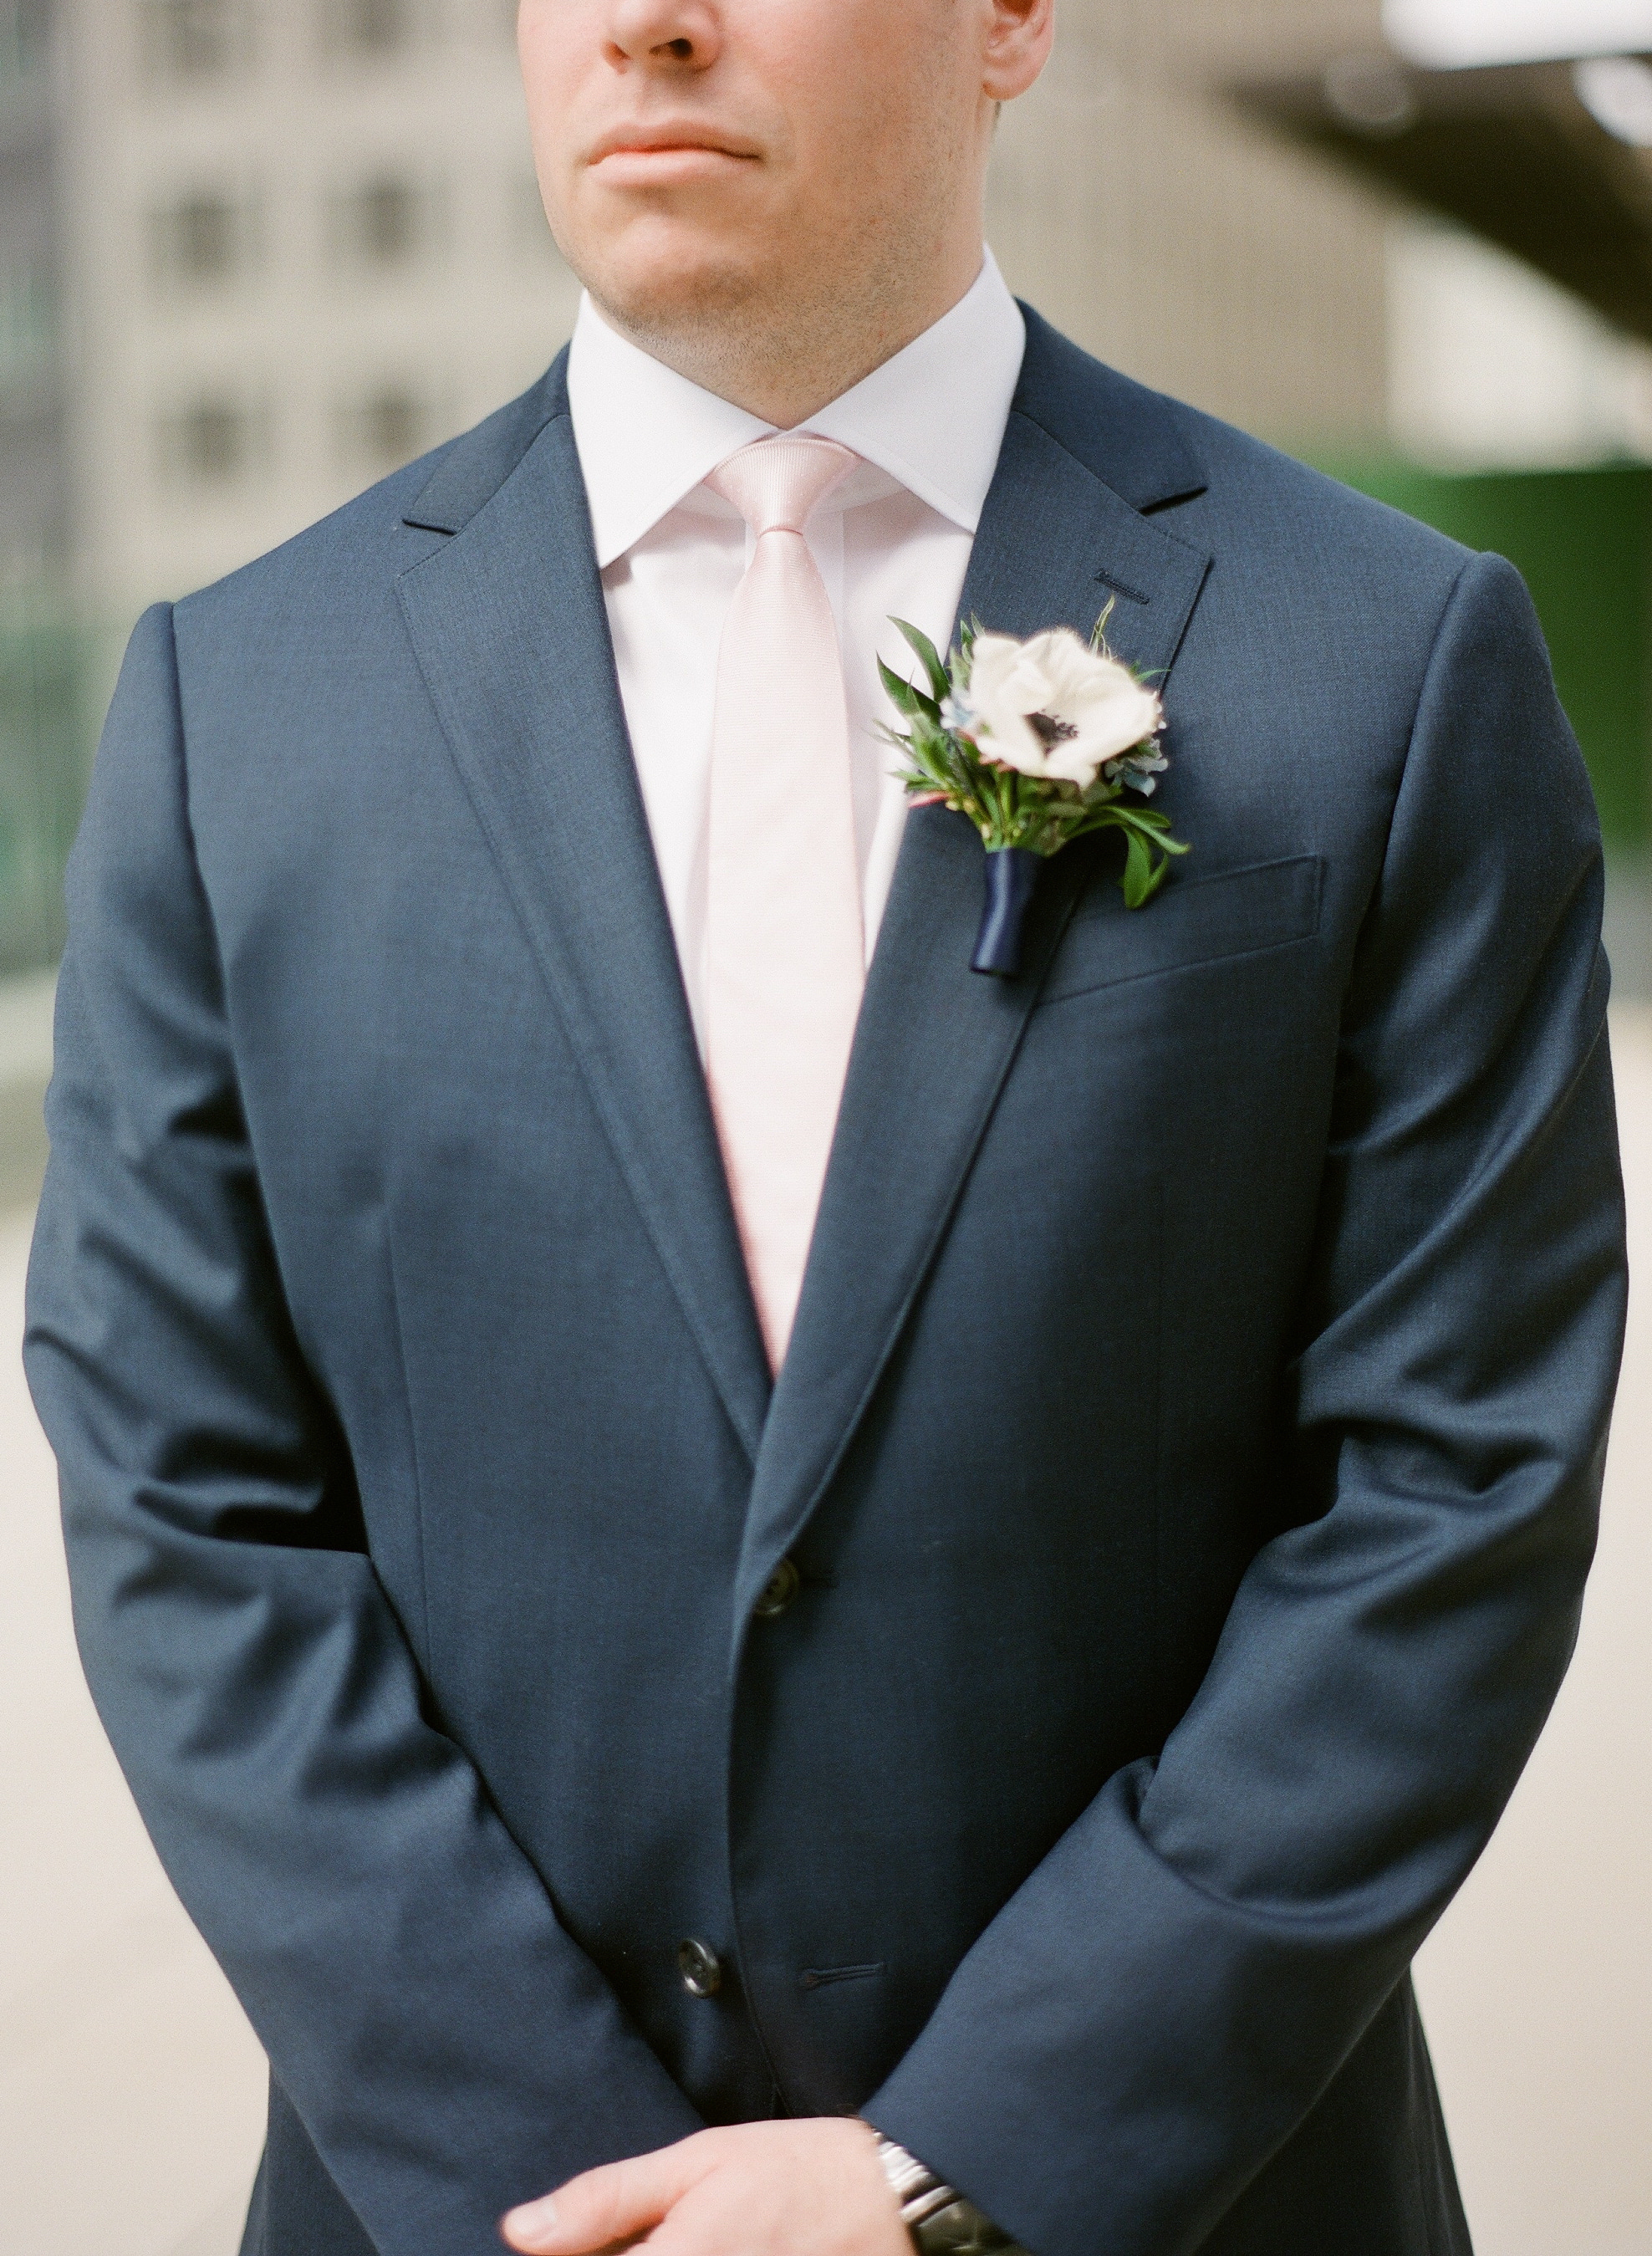 Groom in navy wedding tuxedo with boutonniere for Pittsburgh wedding at Hotel Monaco planned by Exhale Events. Find more modern wedding ideas at exhale-events.com!